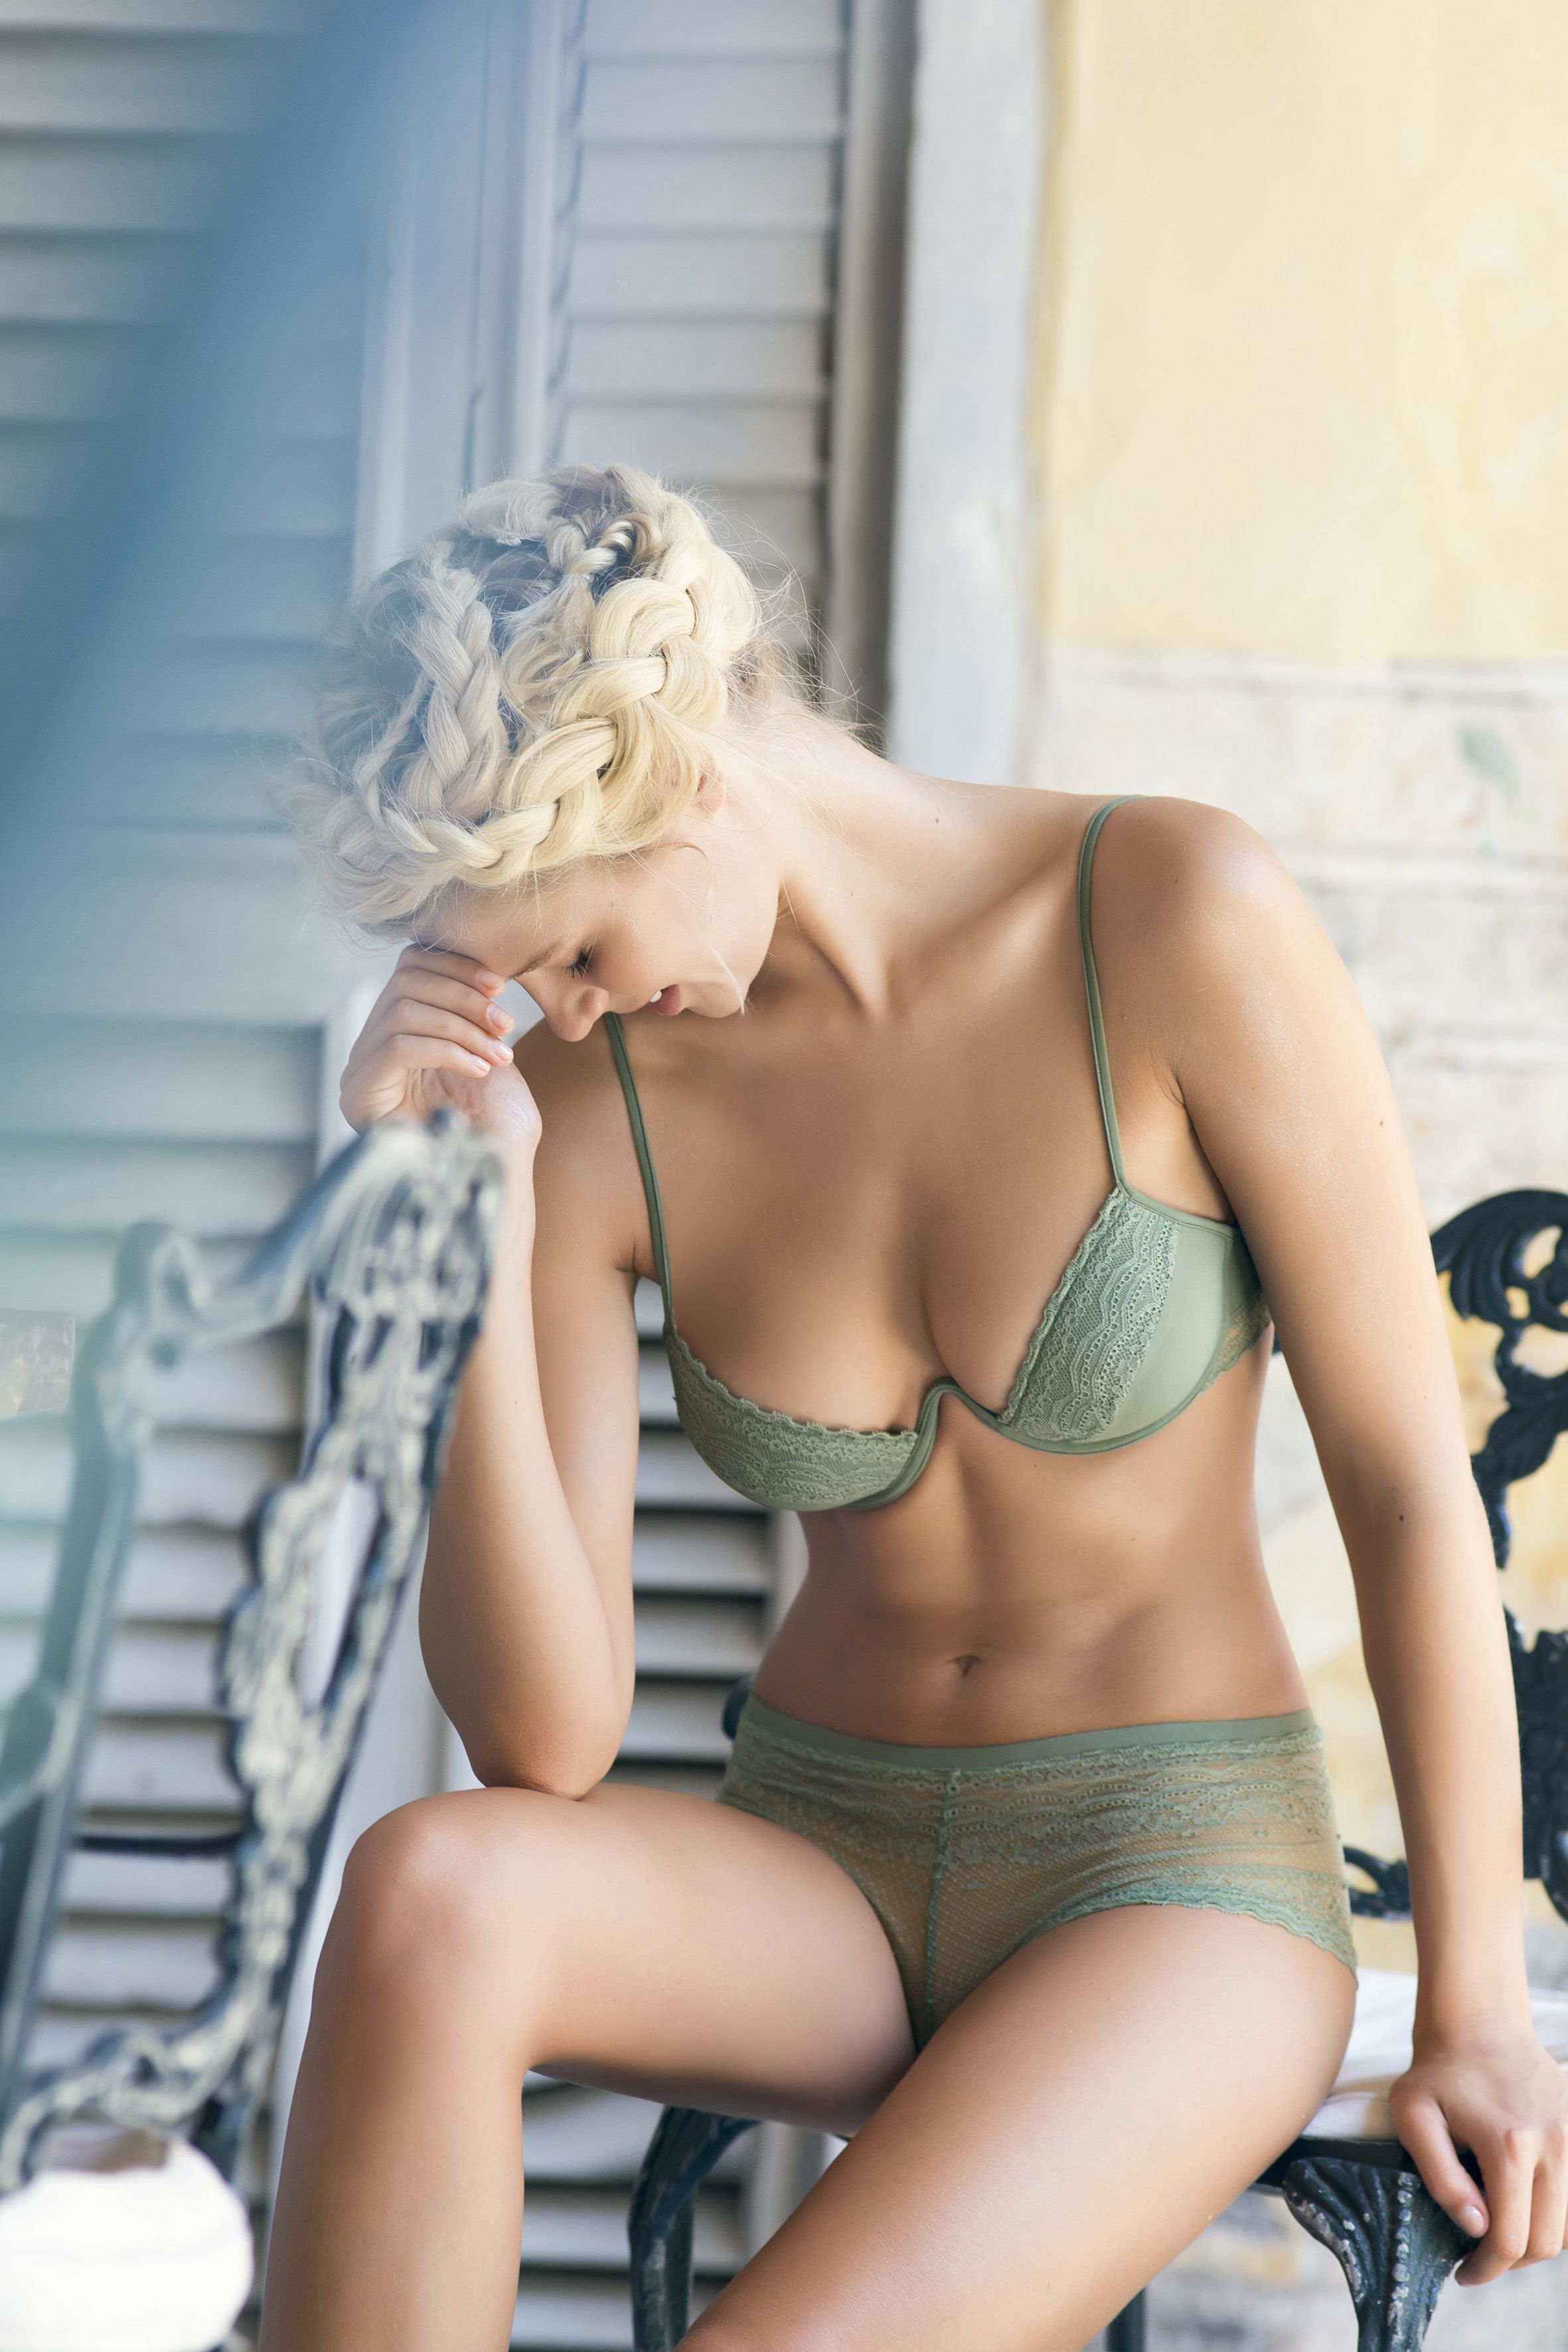 1dcc2d170b Green Underwire Bra Set   Shop Online at www.touche.com.co Touche Lingerie  Collection   Gintare Sudziute